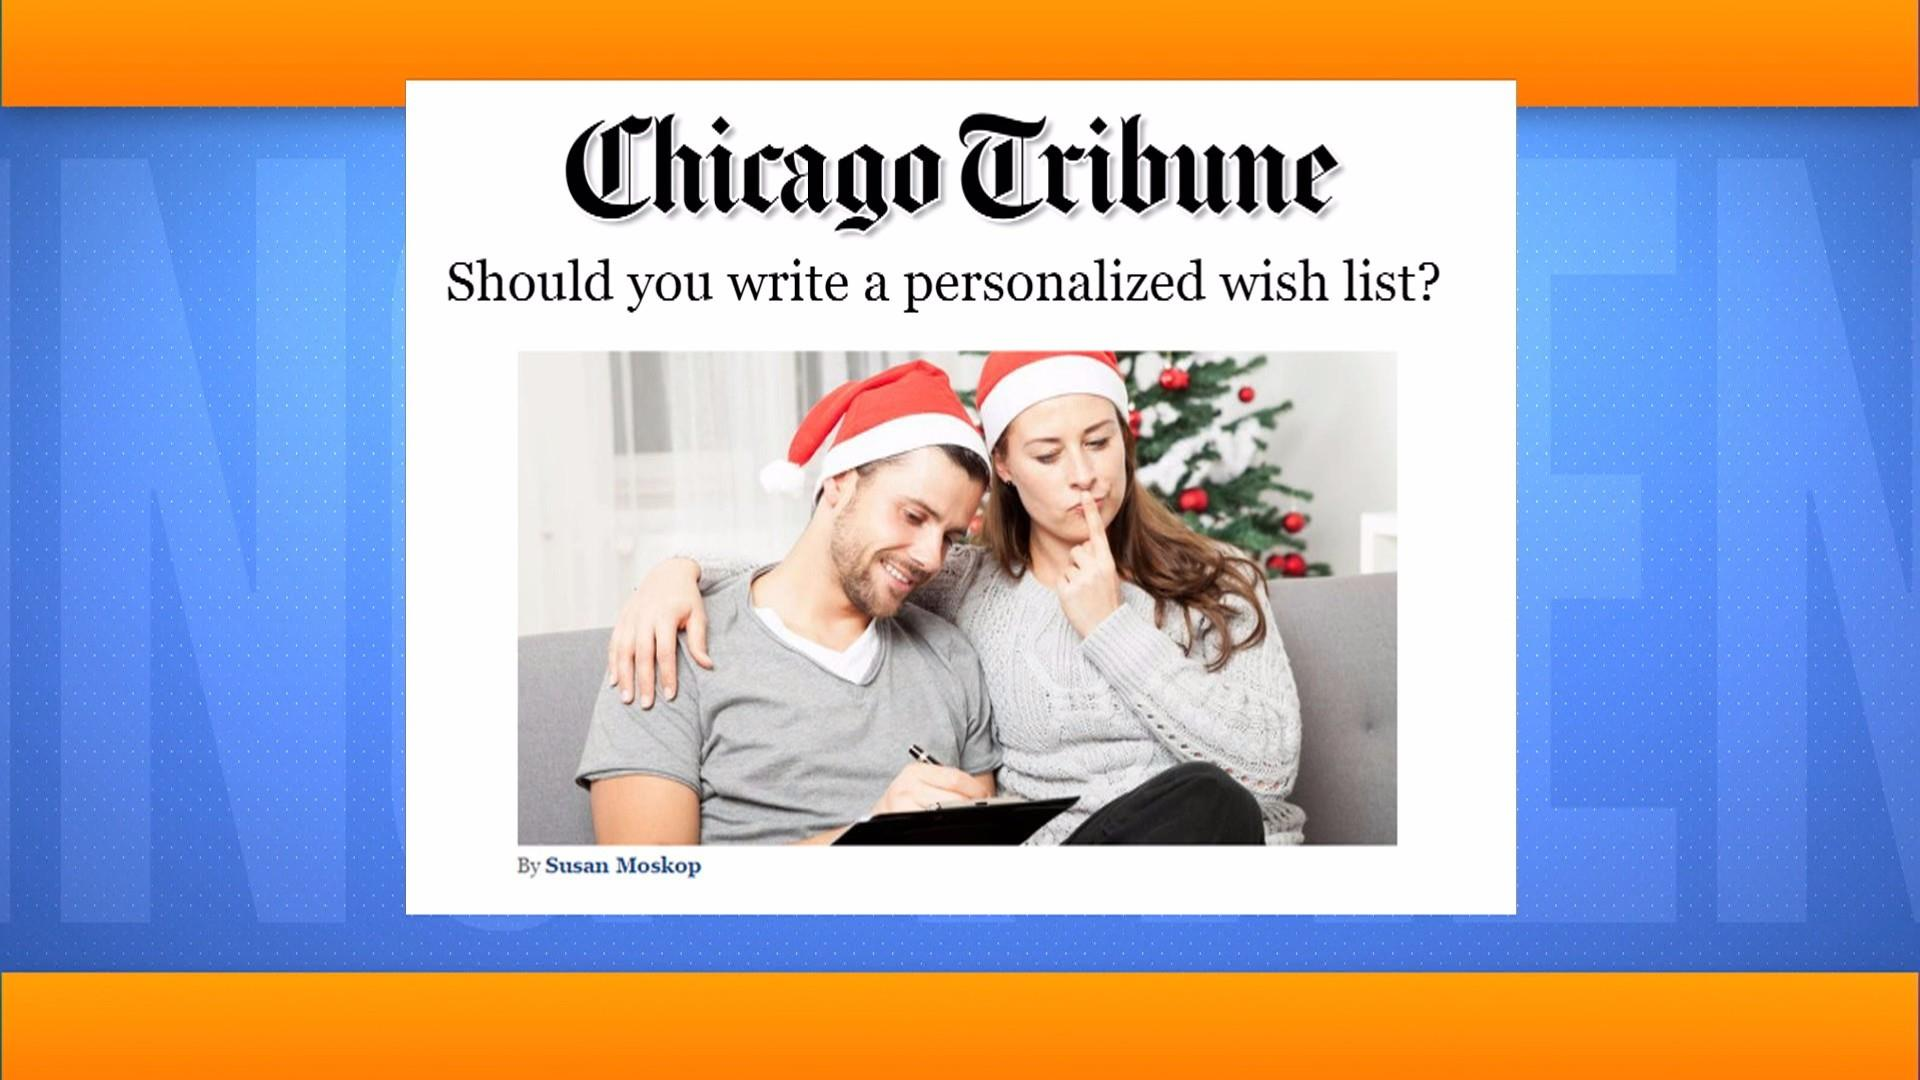 Should you write a personalized wish list? Al Roker says…